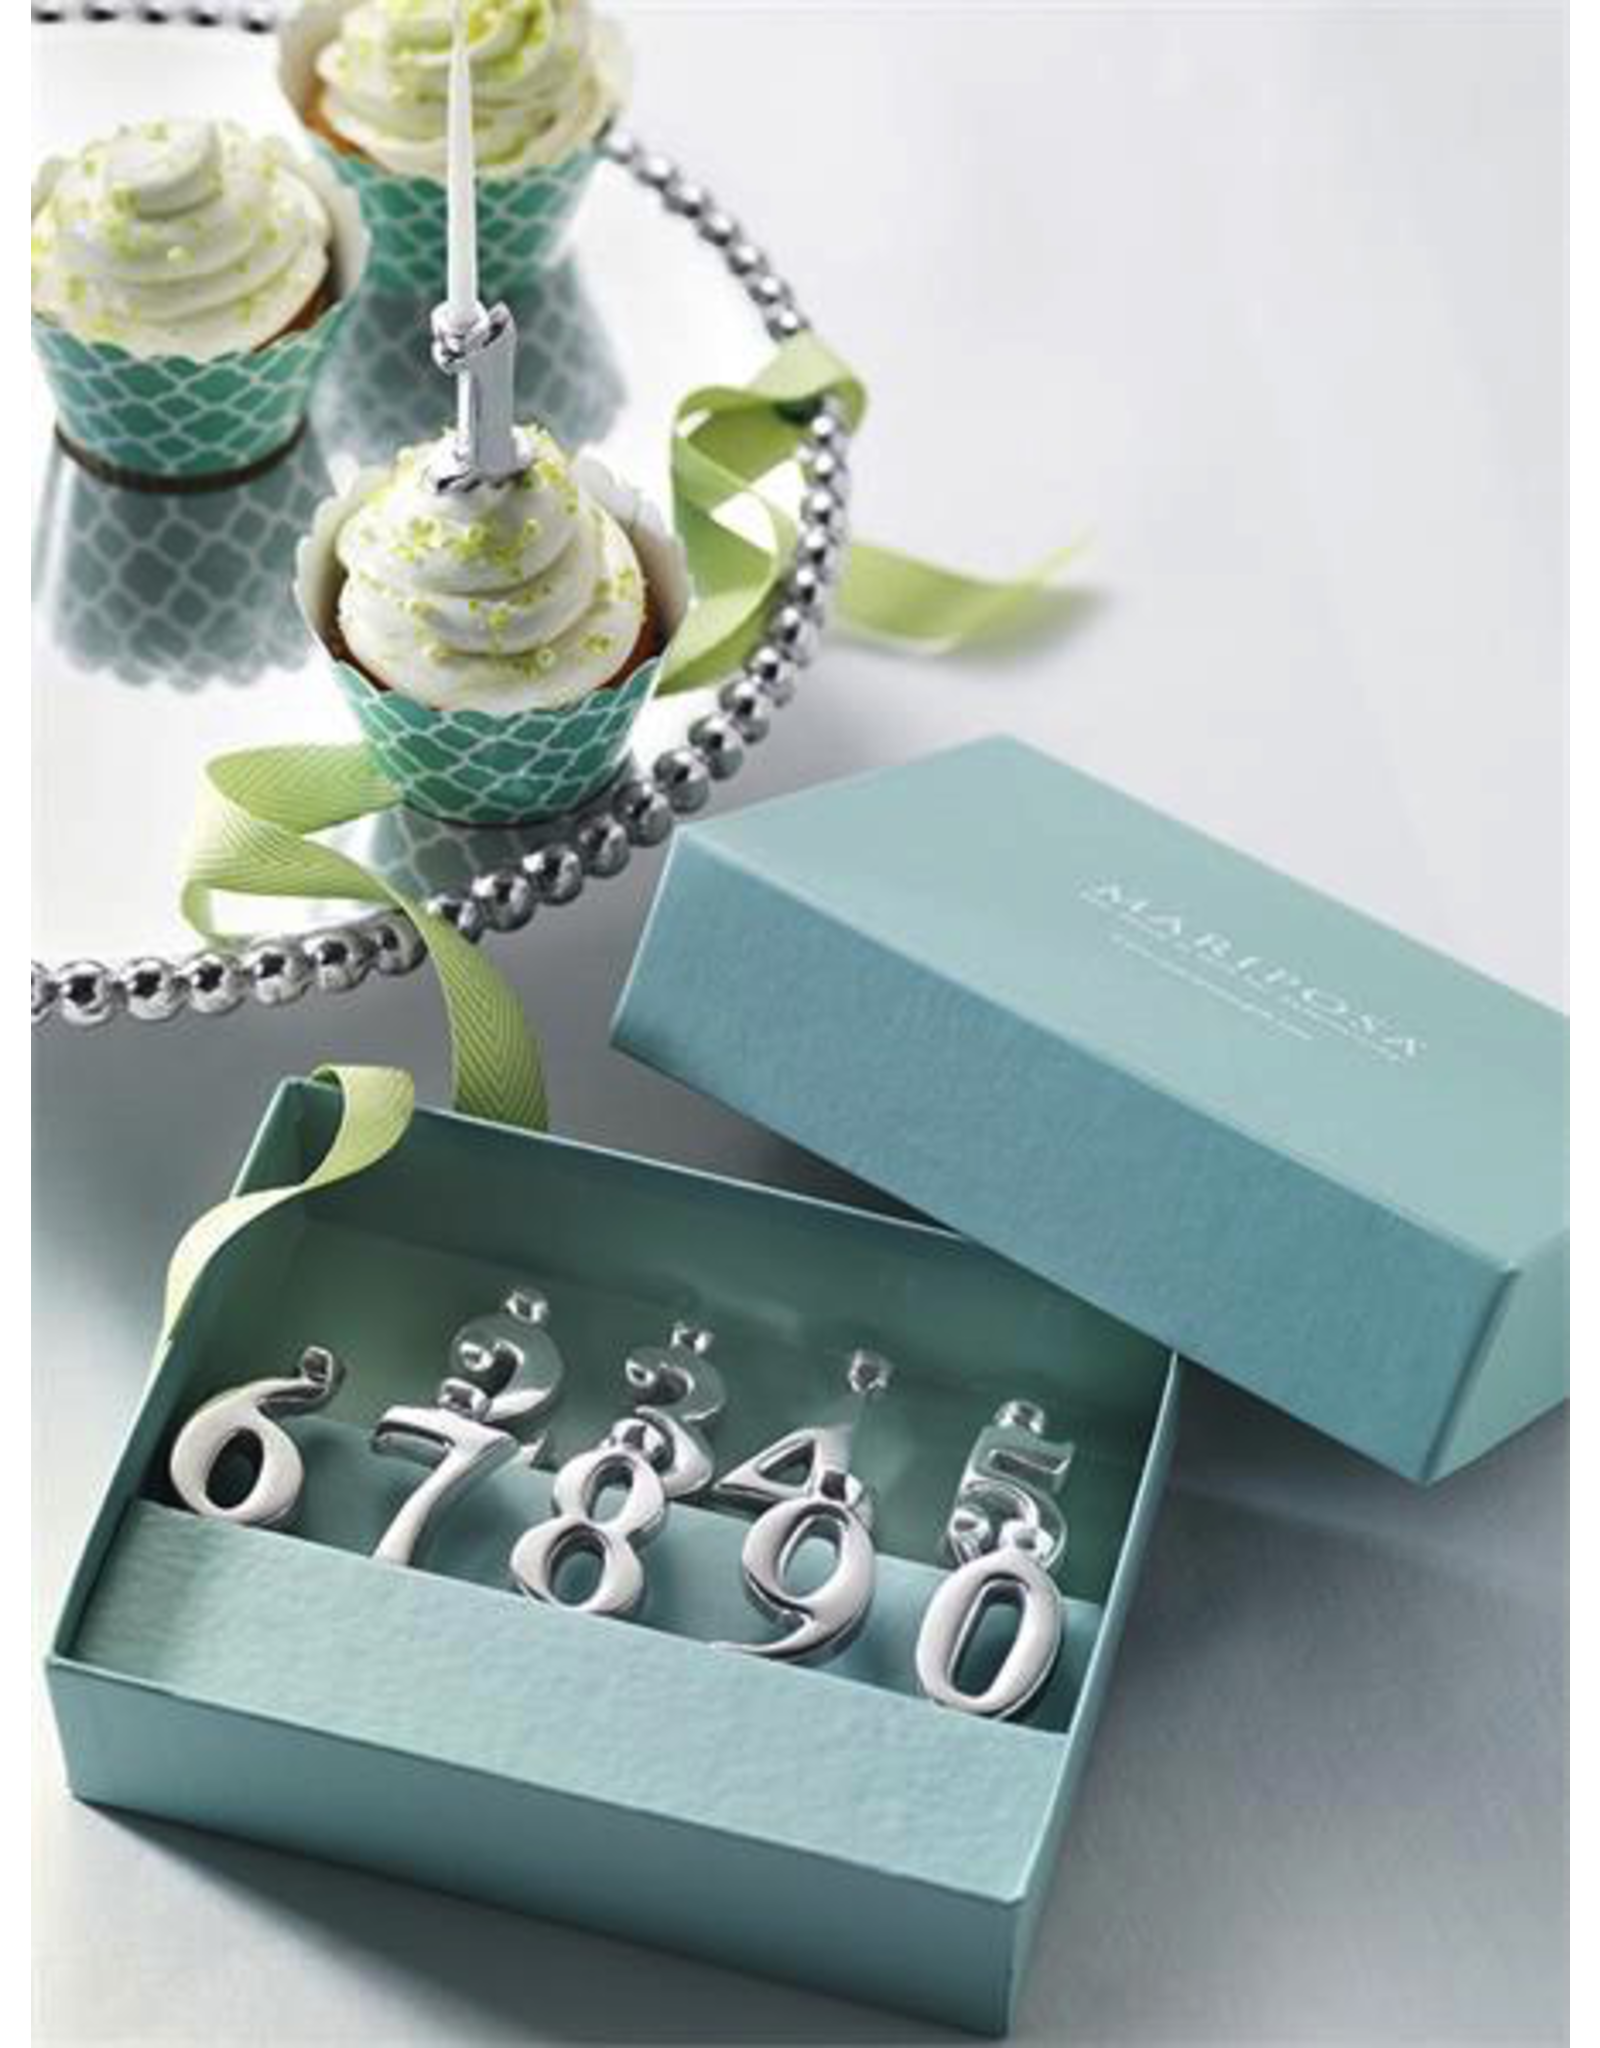 Mariposa Birthday Numbers 1-10 Candle Holder Set